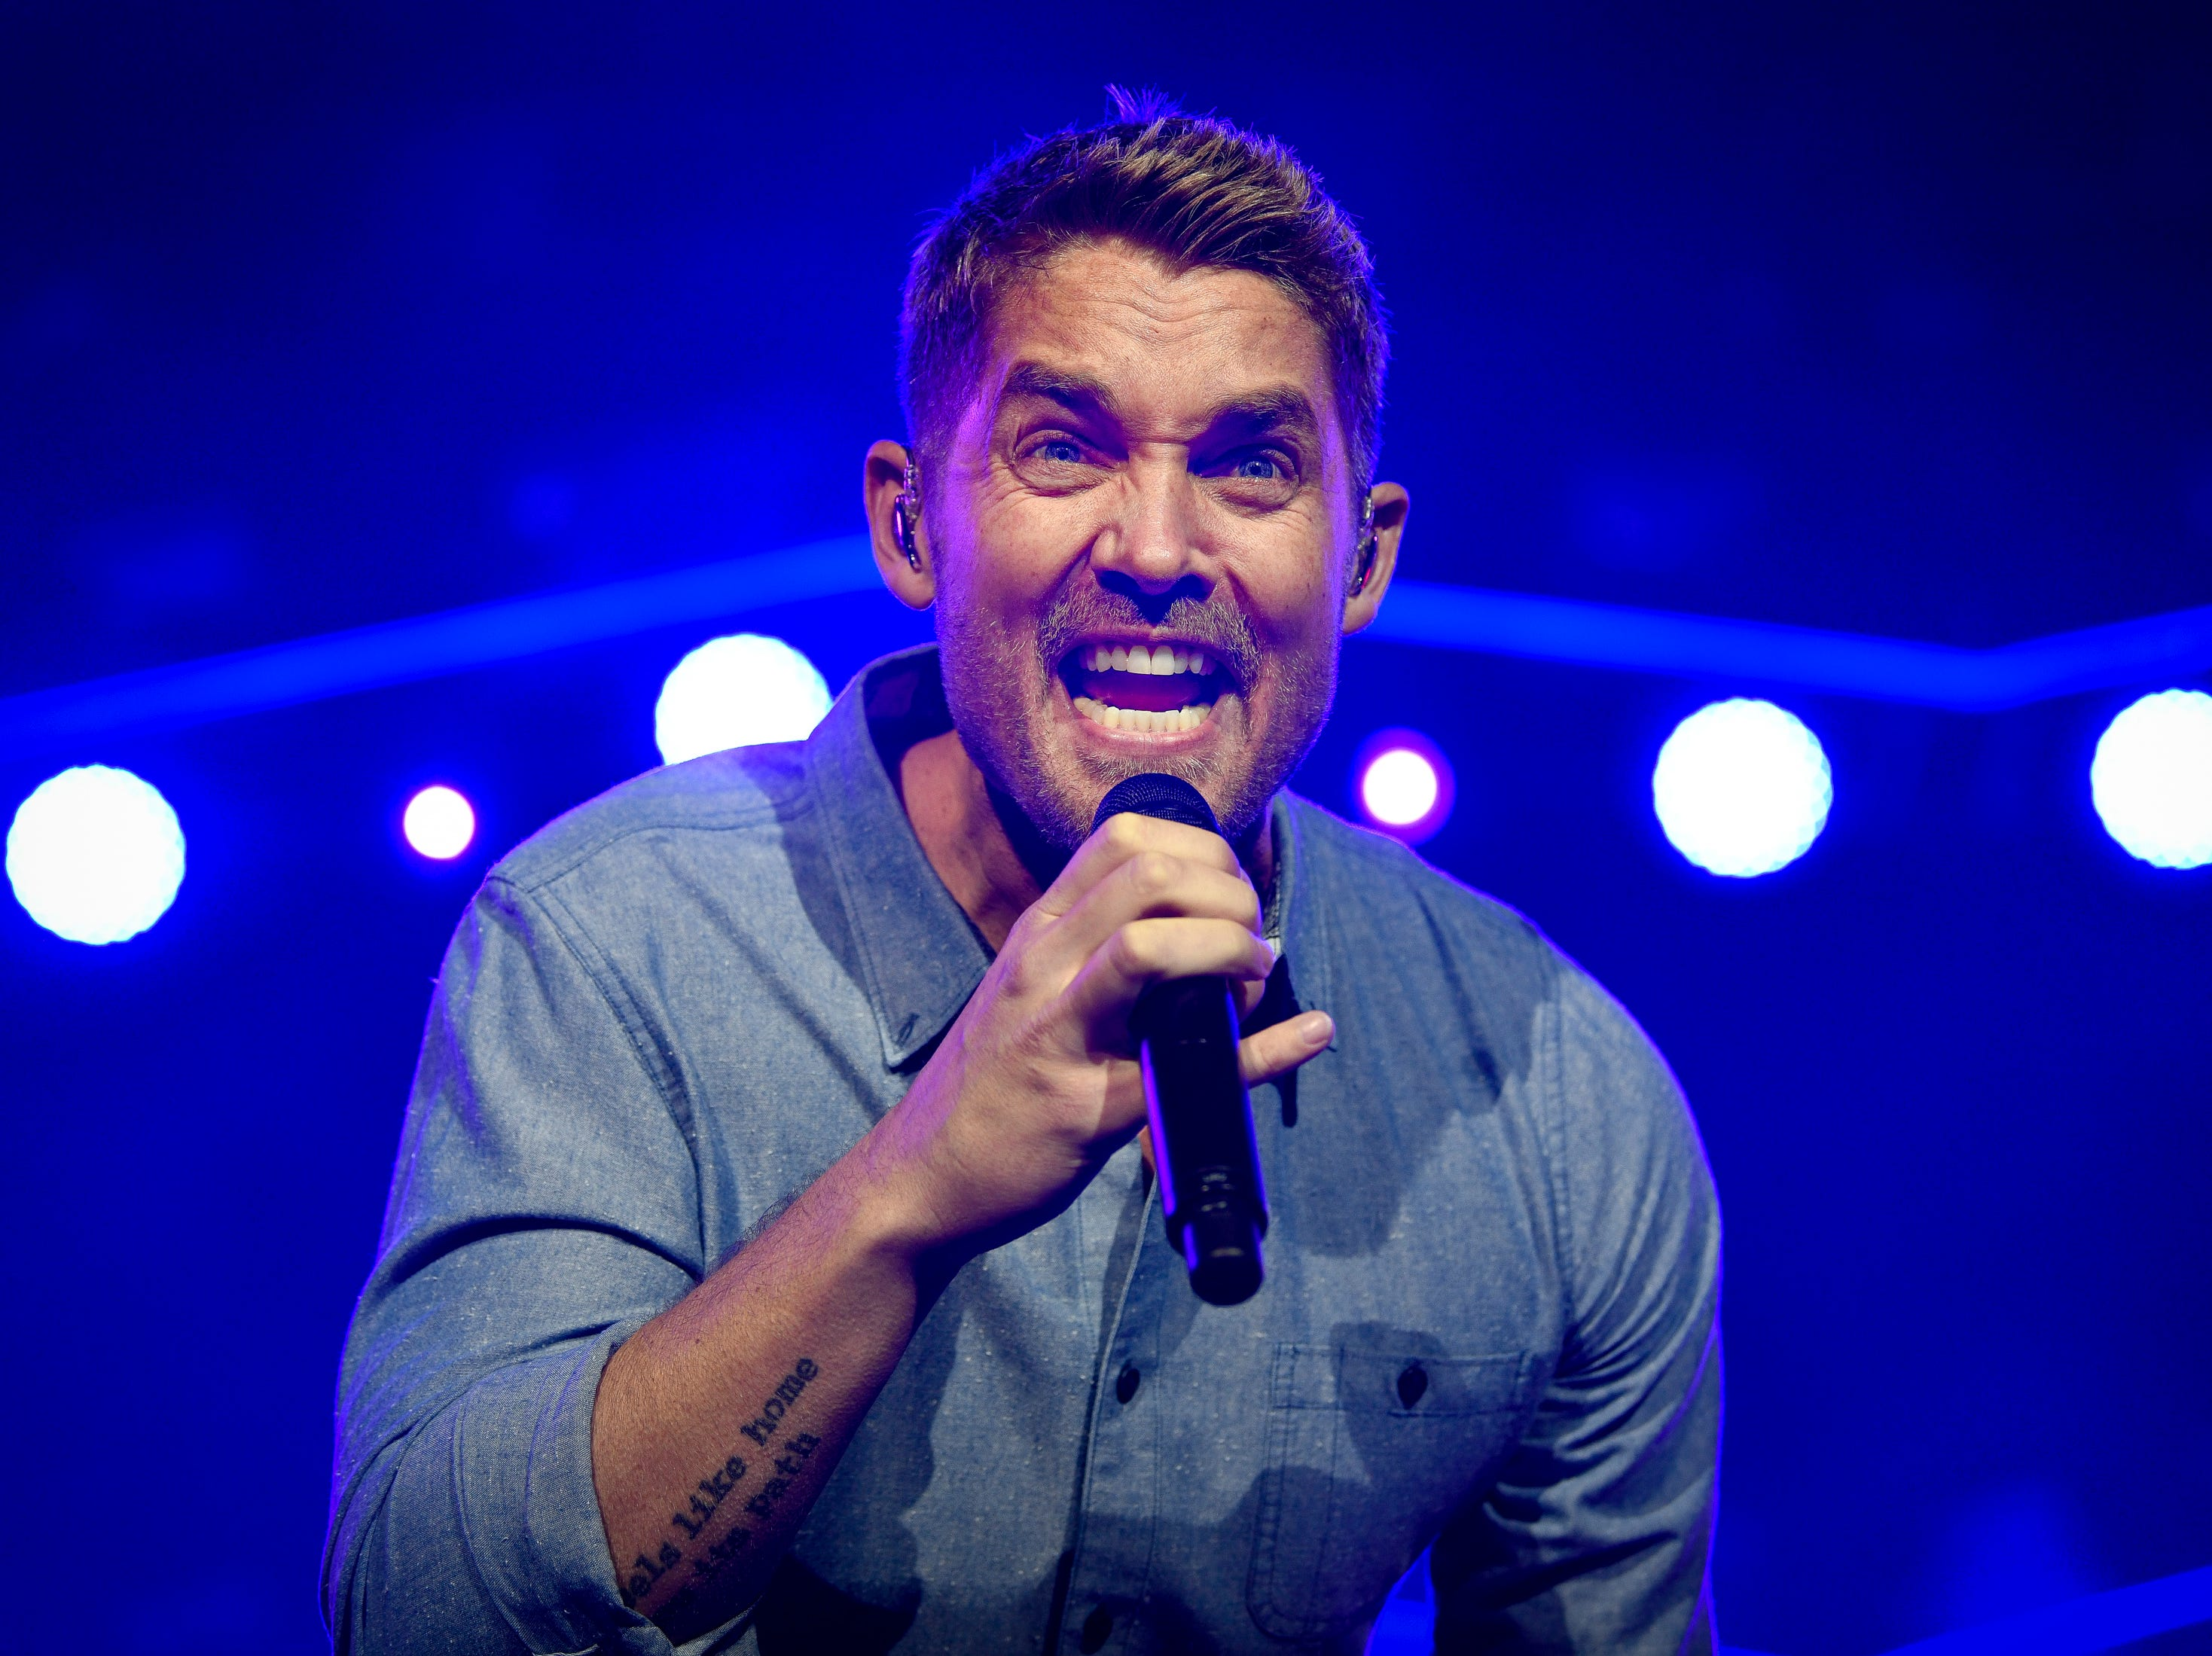 Brett Young performs during the Jack Daniel's Music City Midnight: New Year's Eve event at Bicentennial Capitol Mall State Park in Nashville, Tenn., Monday, Dec. 31, 2018.